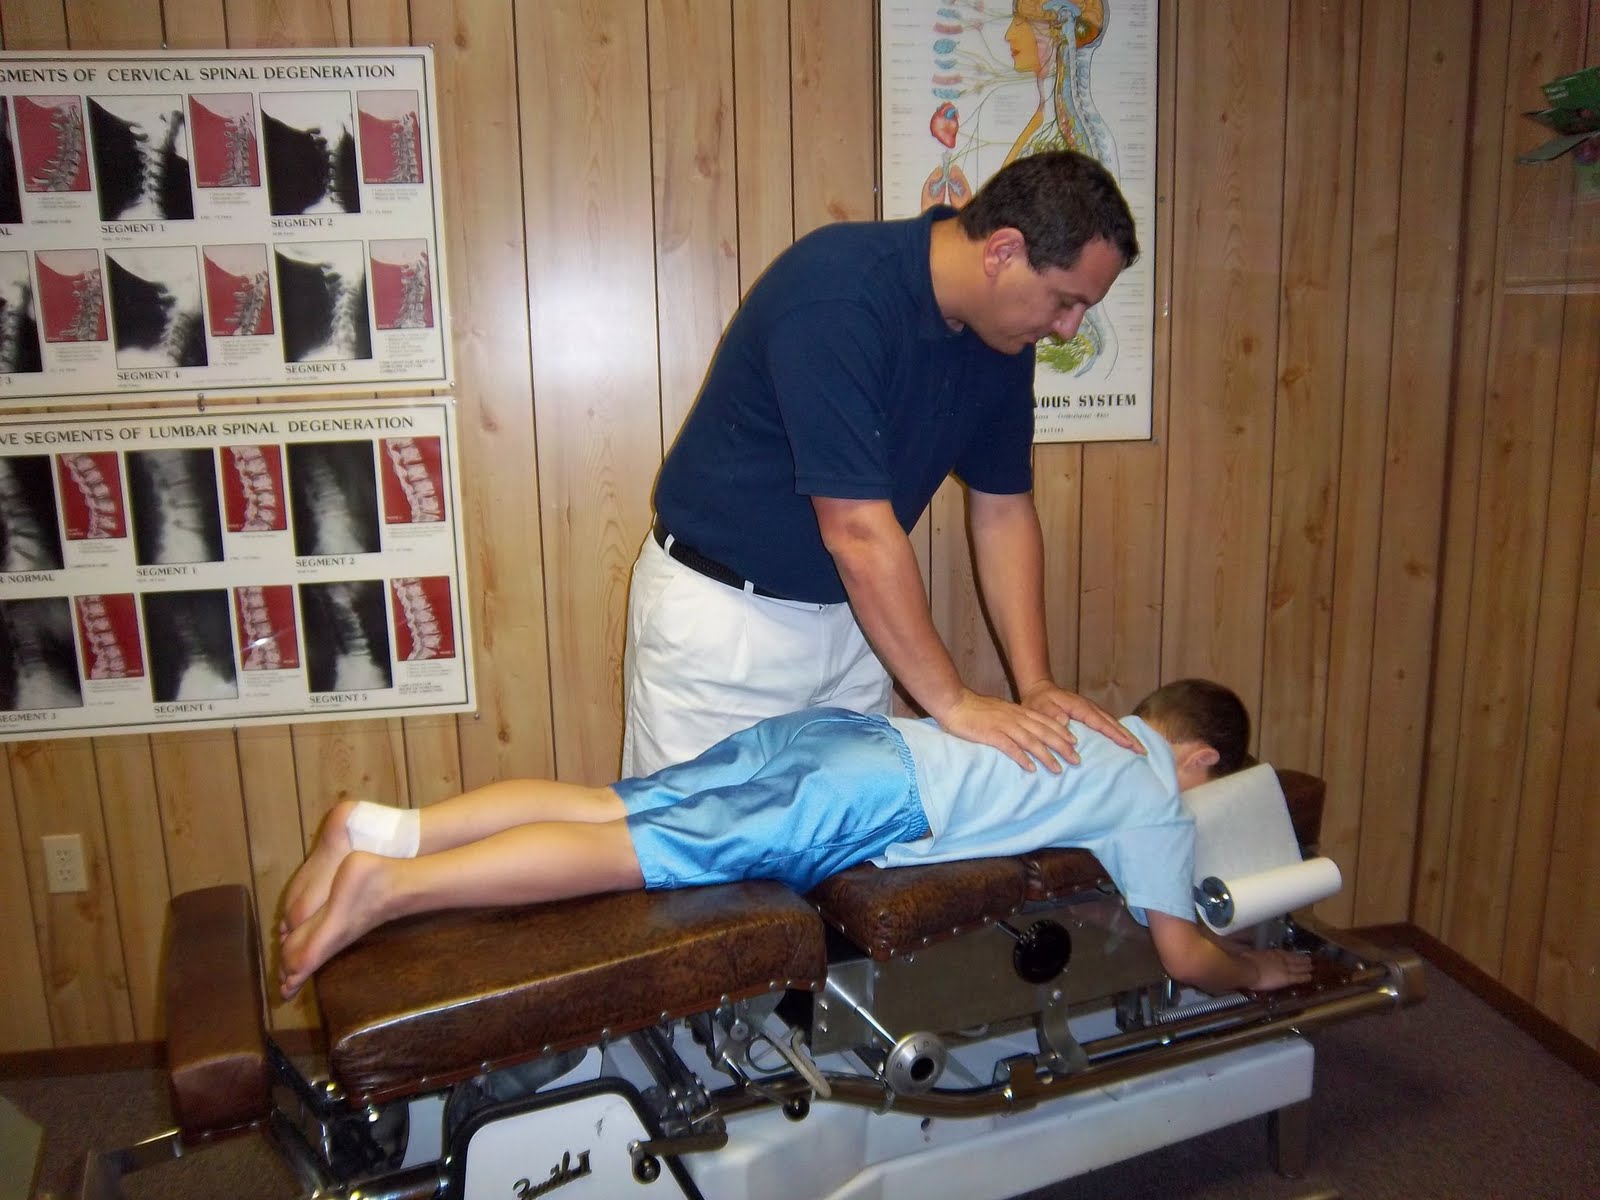 dr mcreynolds take great care to be precise and delivers unique chiropractic adjustments for each patient based on x ray analysis